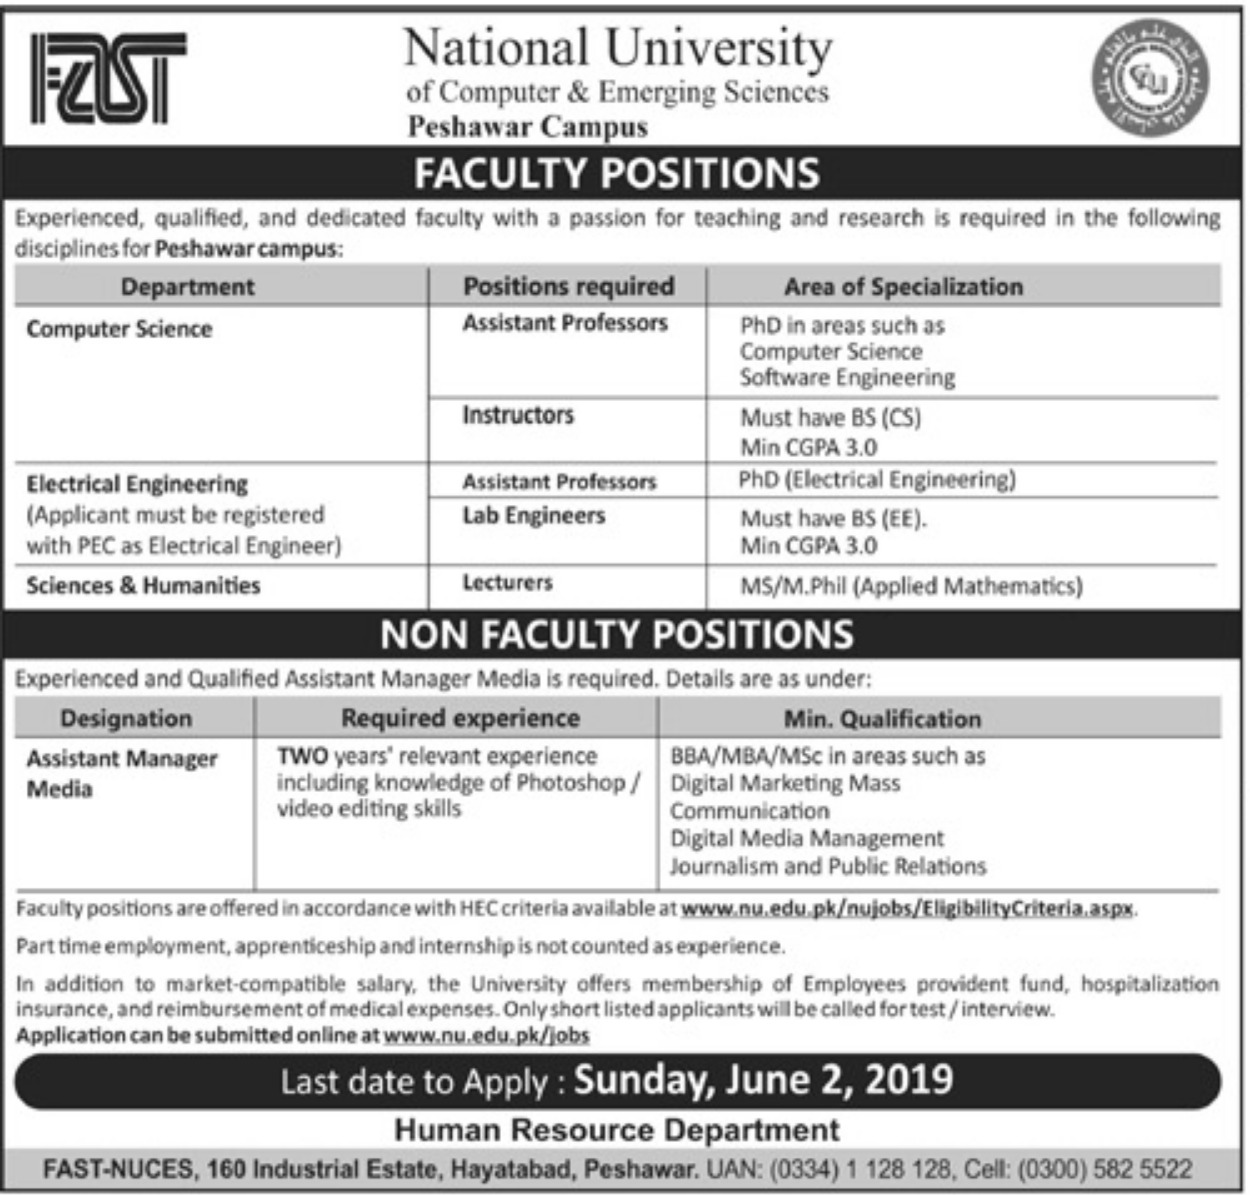 National University of Computer & Emerging Sciences Jobs 2019 Peshawar Campus